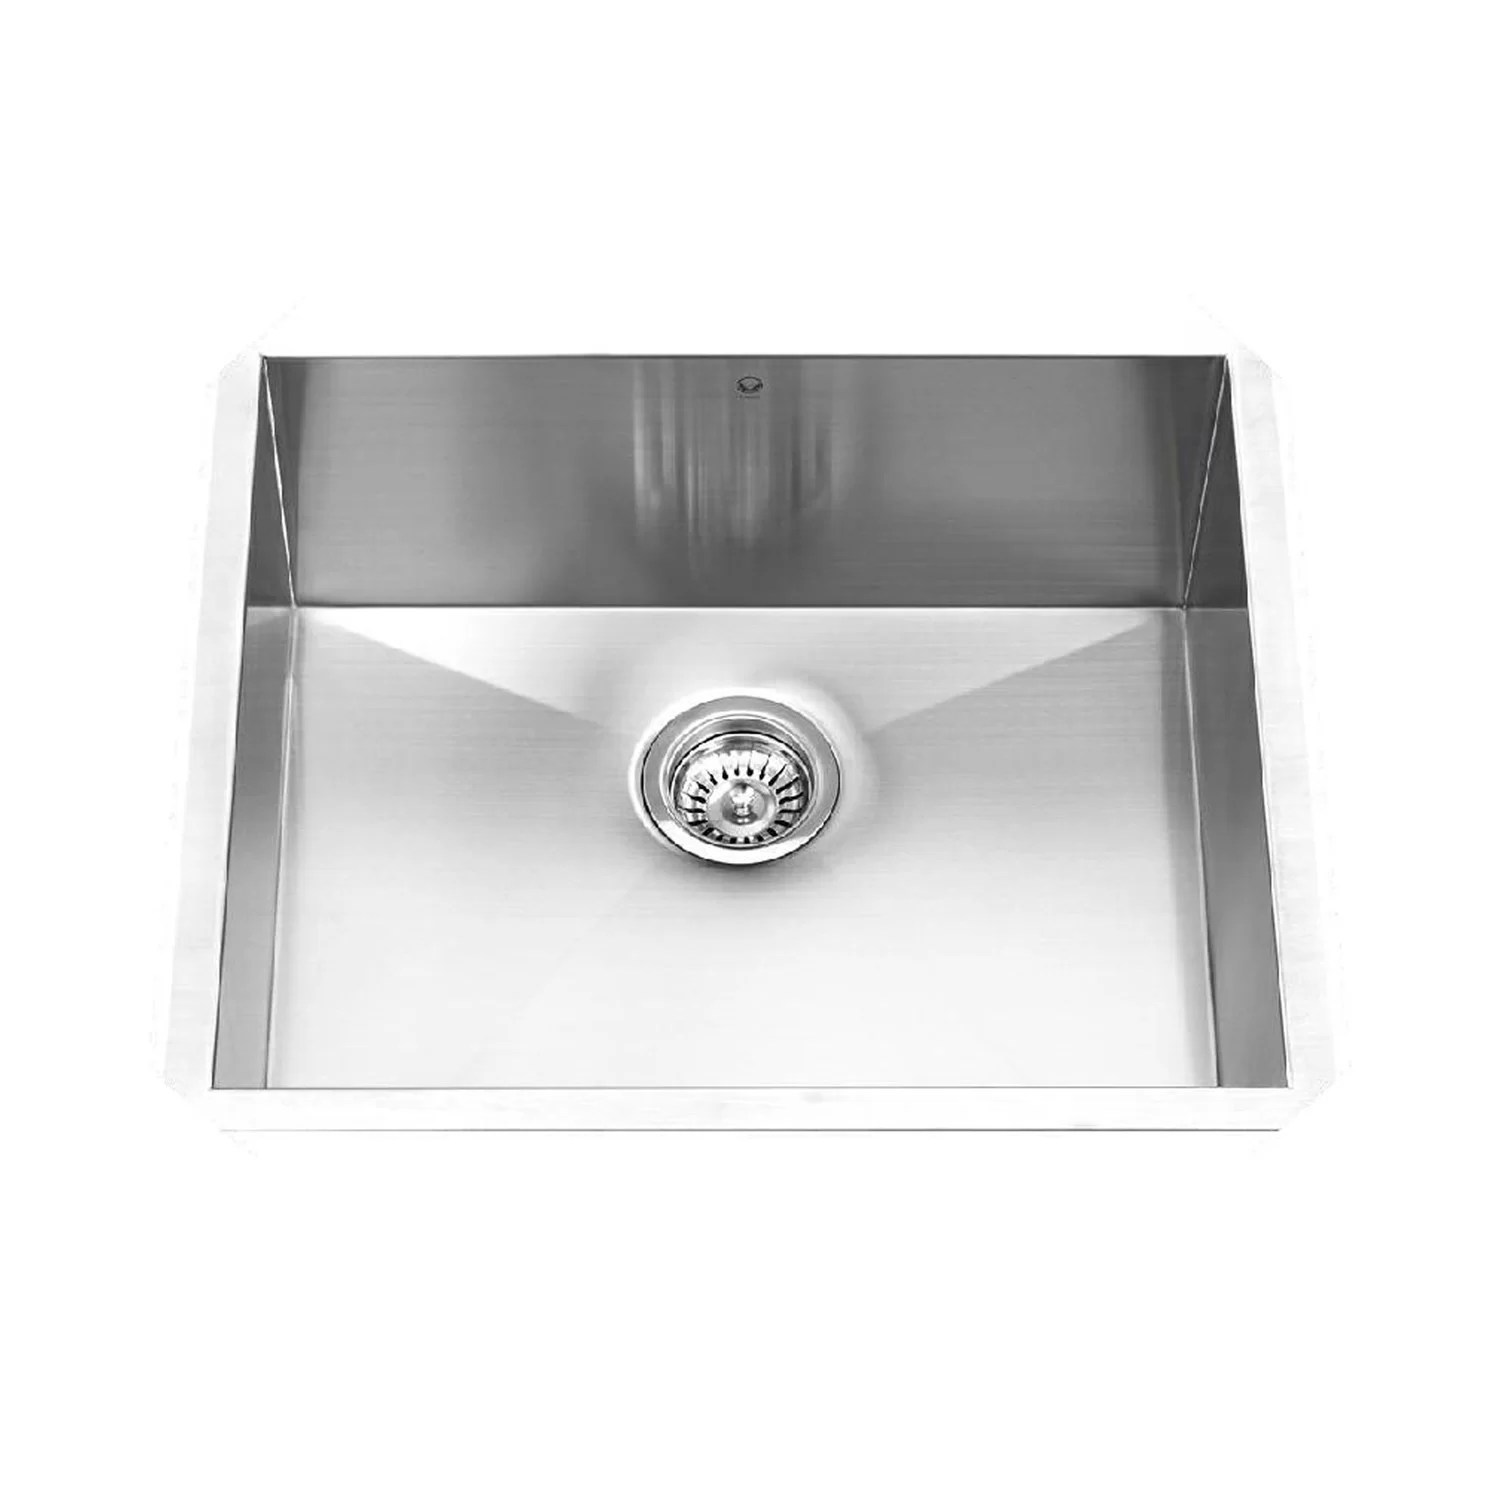 stainless steel kitchen sink reviews kohler pull down faucet vigo 23 inch undermount single bowl 16 gauge